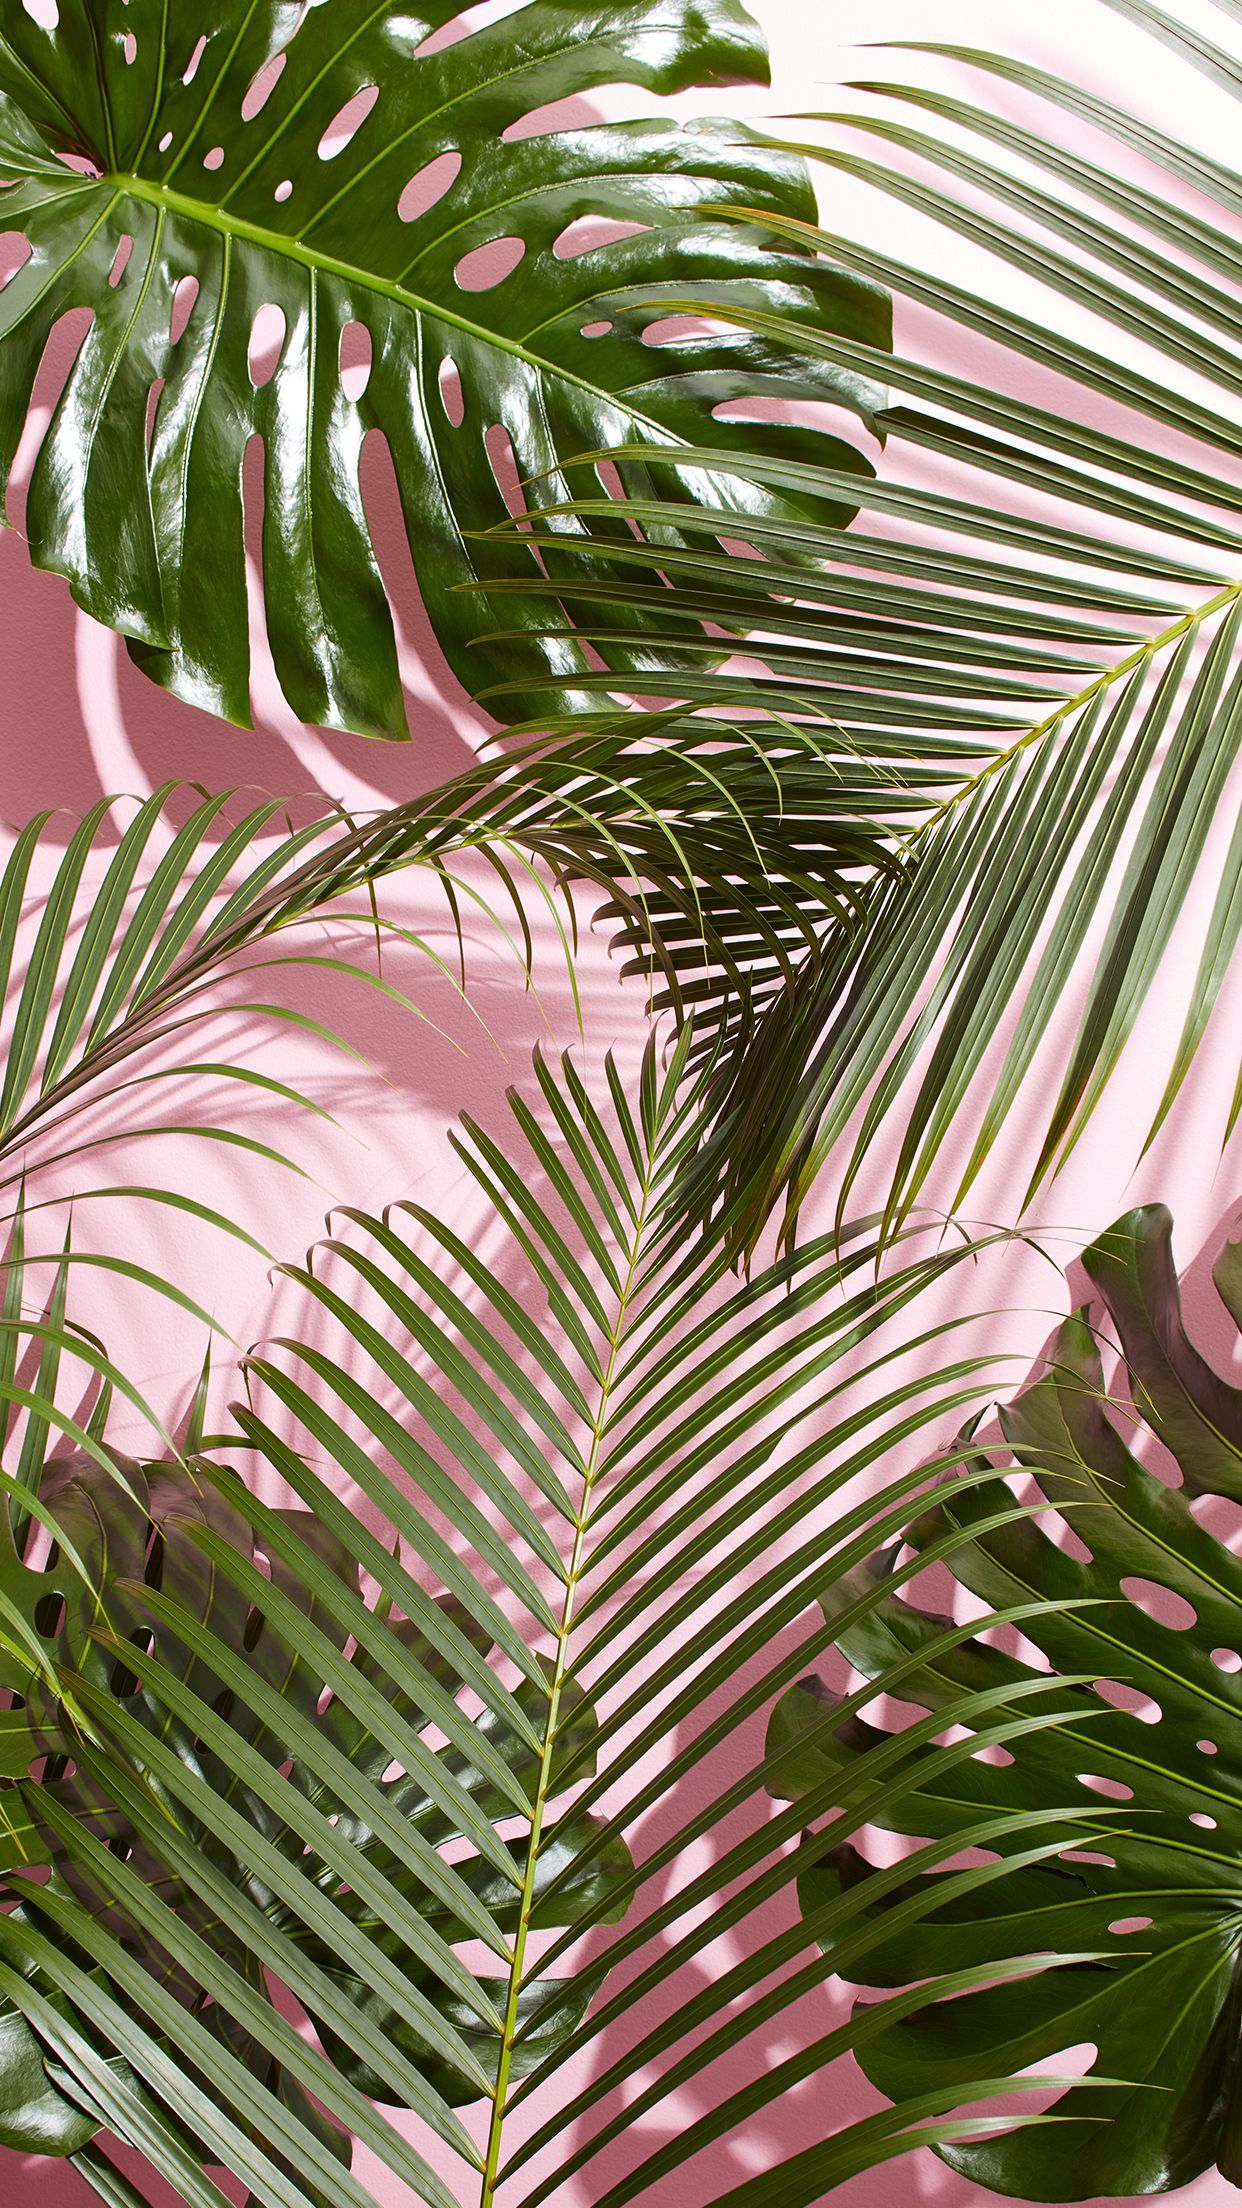 Palm Leaves Iphone Wallpapers Top Free Palm Leaves Iphone Backgrounds Wallpaperaccess